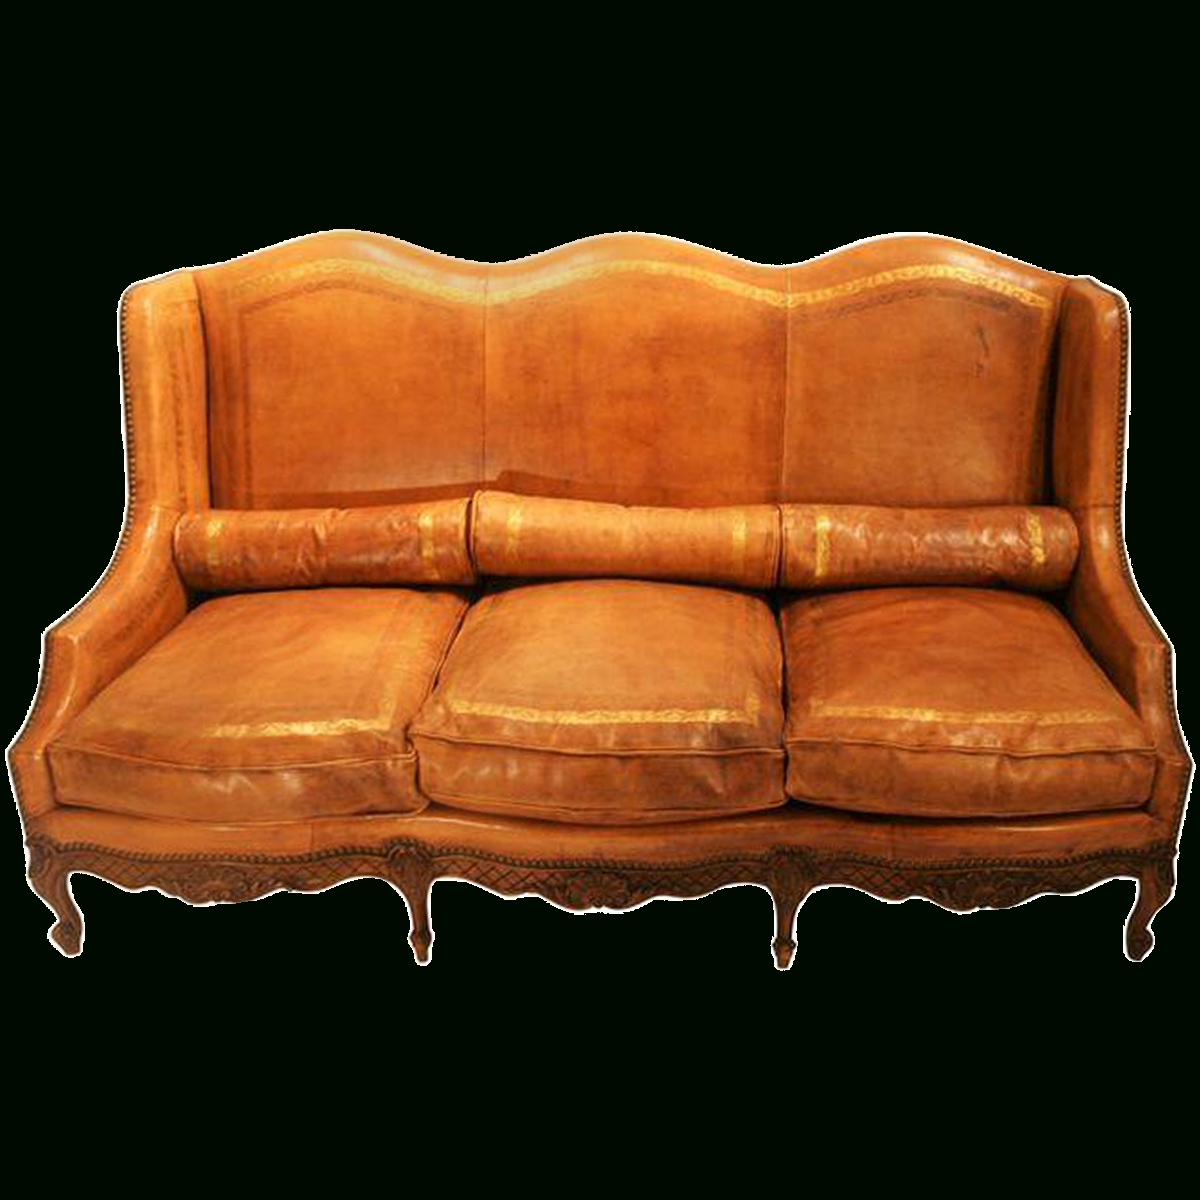 Viyet - Designer Furniture - Seating - Antique Louis Xv Camelback throughout Camelback Leather Sofas